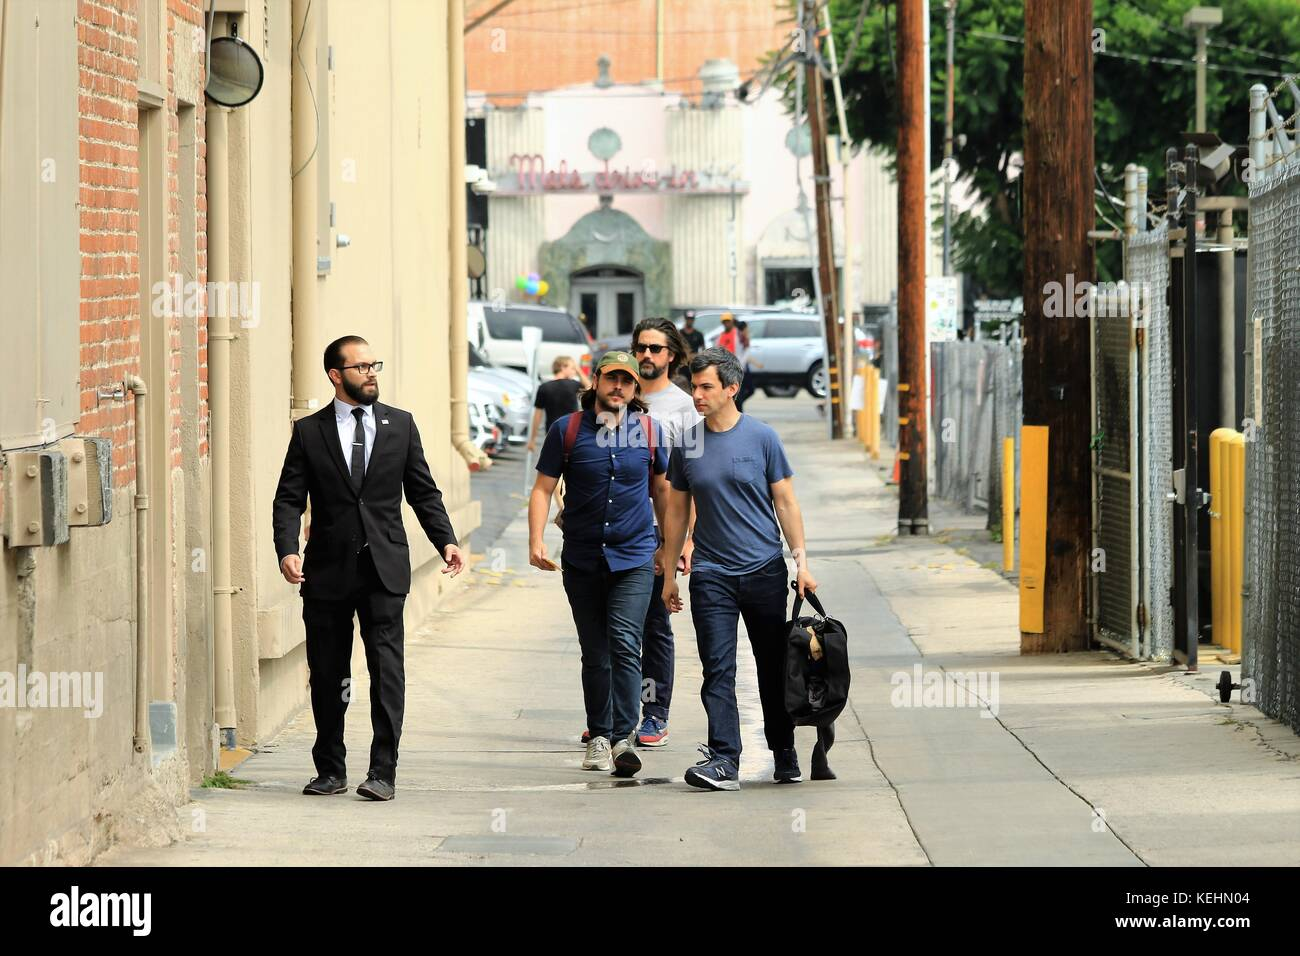 Nathan Fielder arrives at the ABC Studios for an appearance on 'Jimmy Kimmel Live!'  Featuring: Nathan Felder - Stock Image